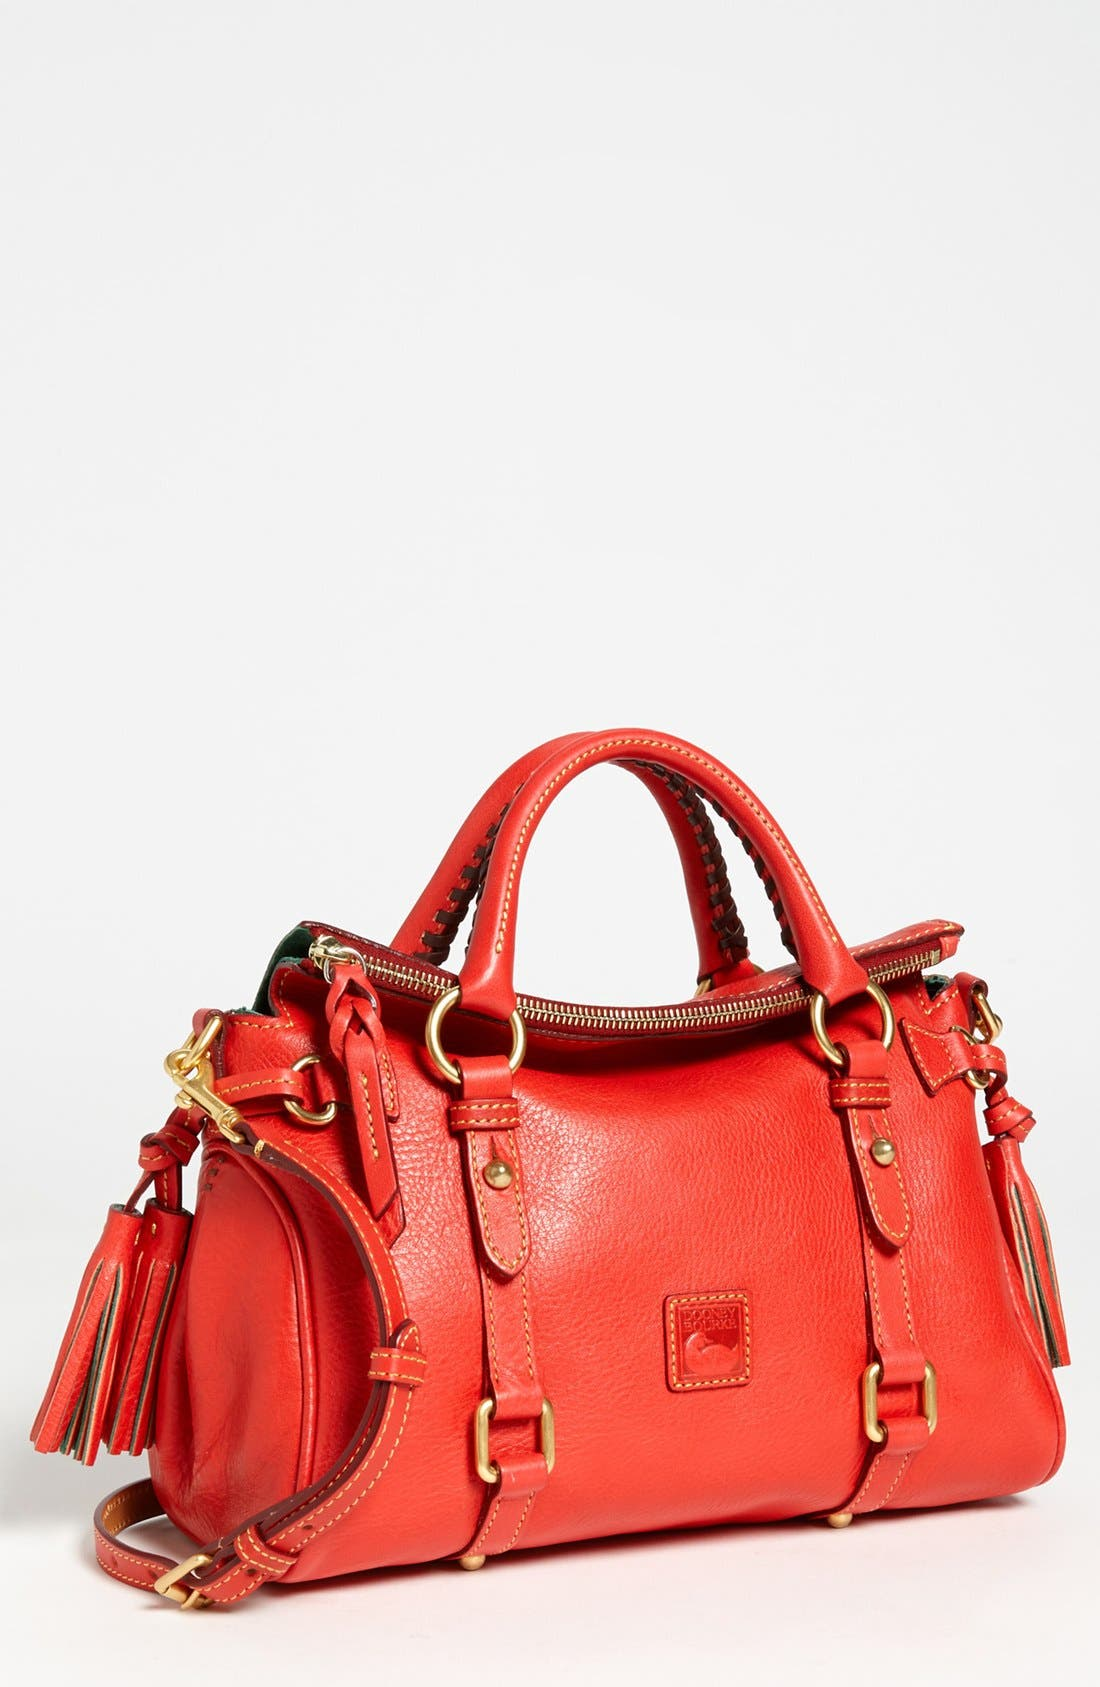 Main Image - Dooney & Bourke 'Mini - Florentine Collection' Leather Satchel